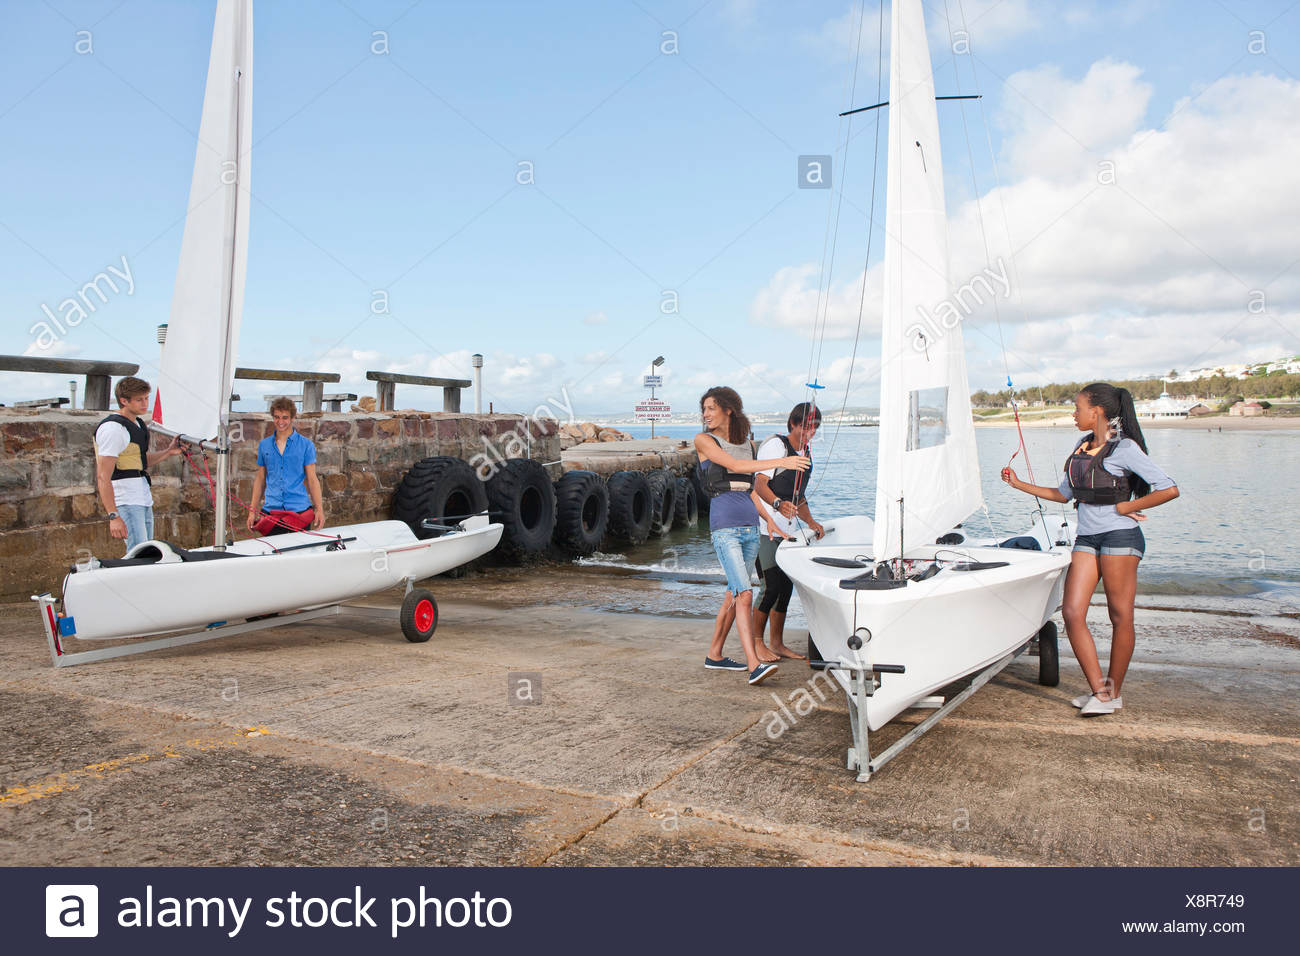 Young adult friends preparing sailboats on waterfront - Stock Image